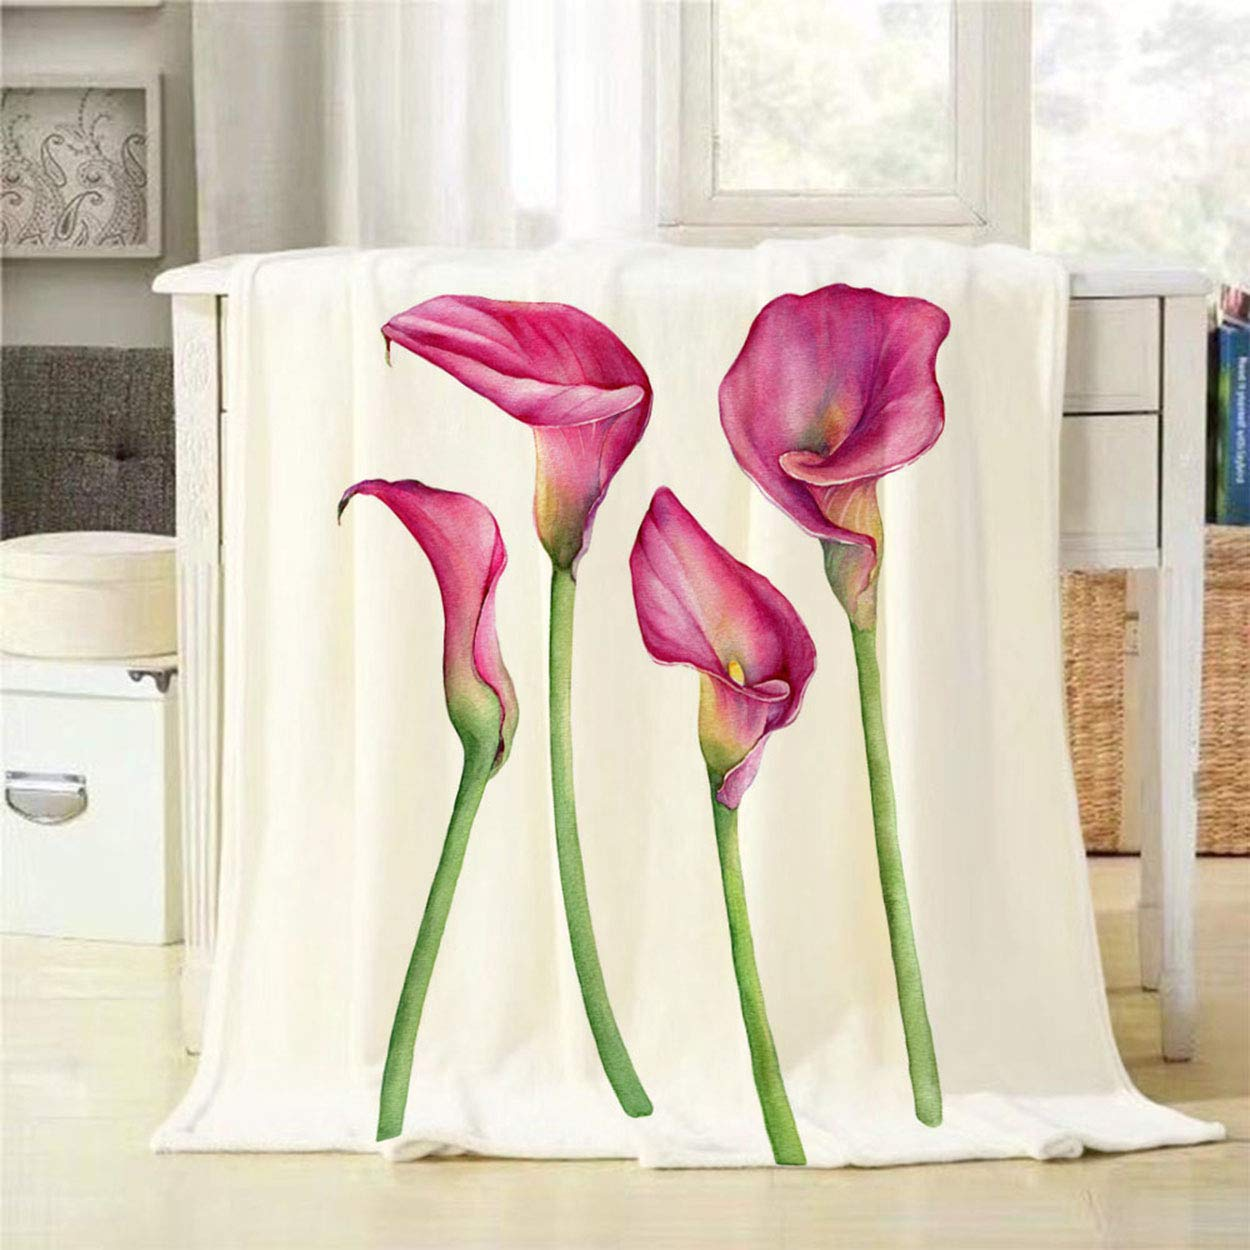 Mugod Throw Blanket Set of Pink Calla Lily Zantedeschia Rehmannii Flower Isolated on a White Decorative Soft Warm Cozy Flannel Plush Throws Blankets for Bedding Sofa Couch 60 X 80 Inch by Mugod